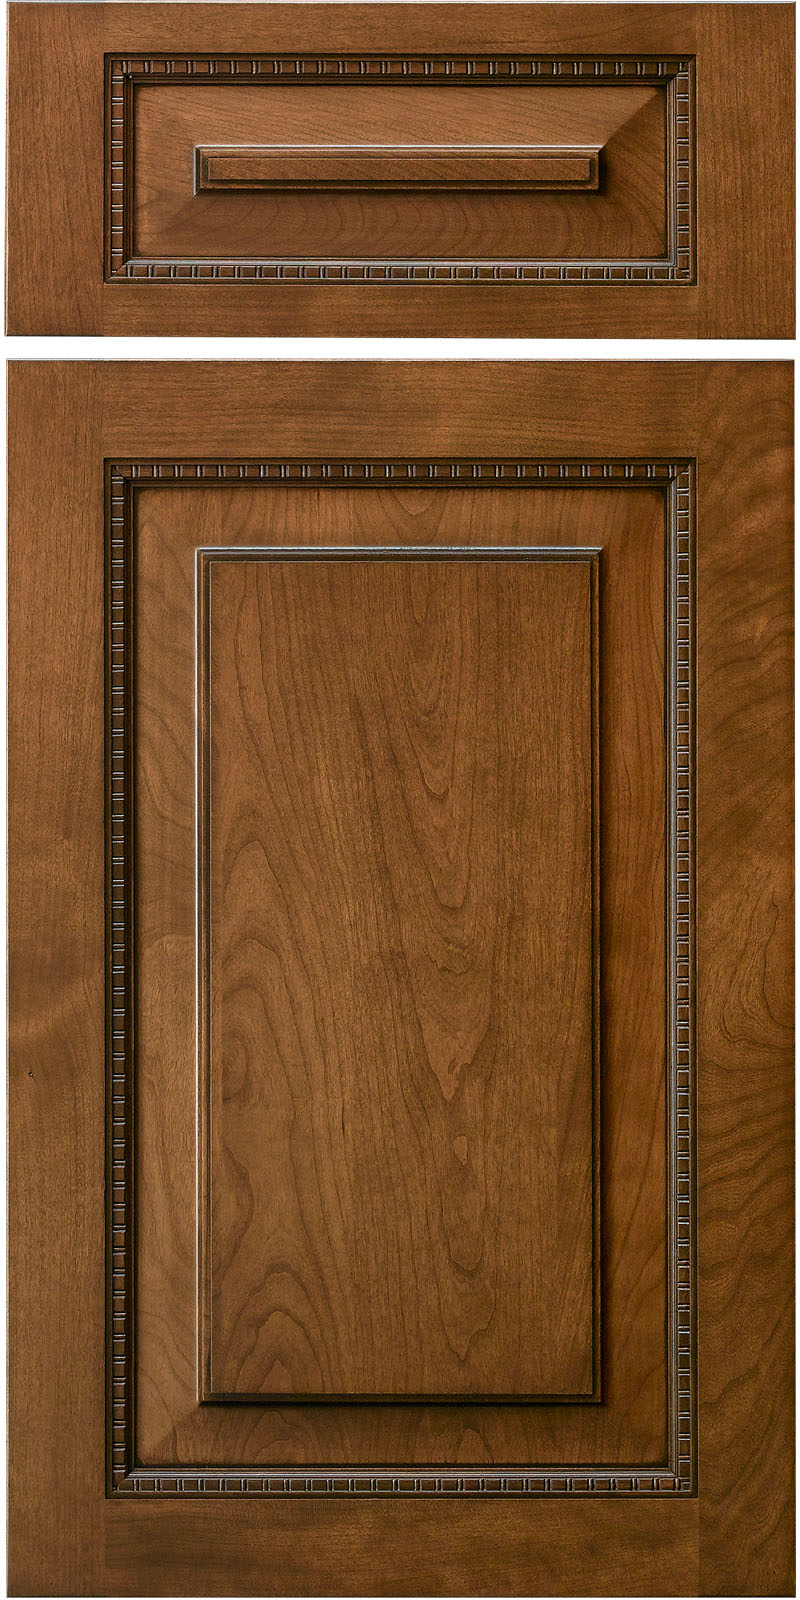 Cornwall Applied Moulding Door